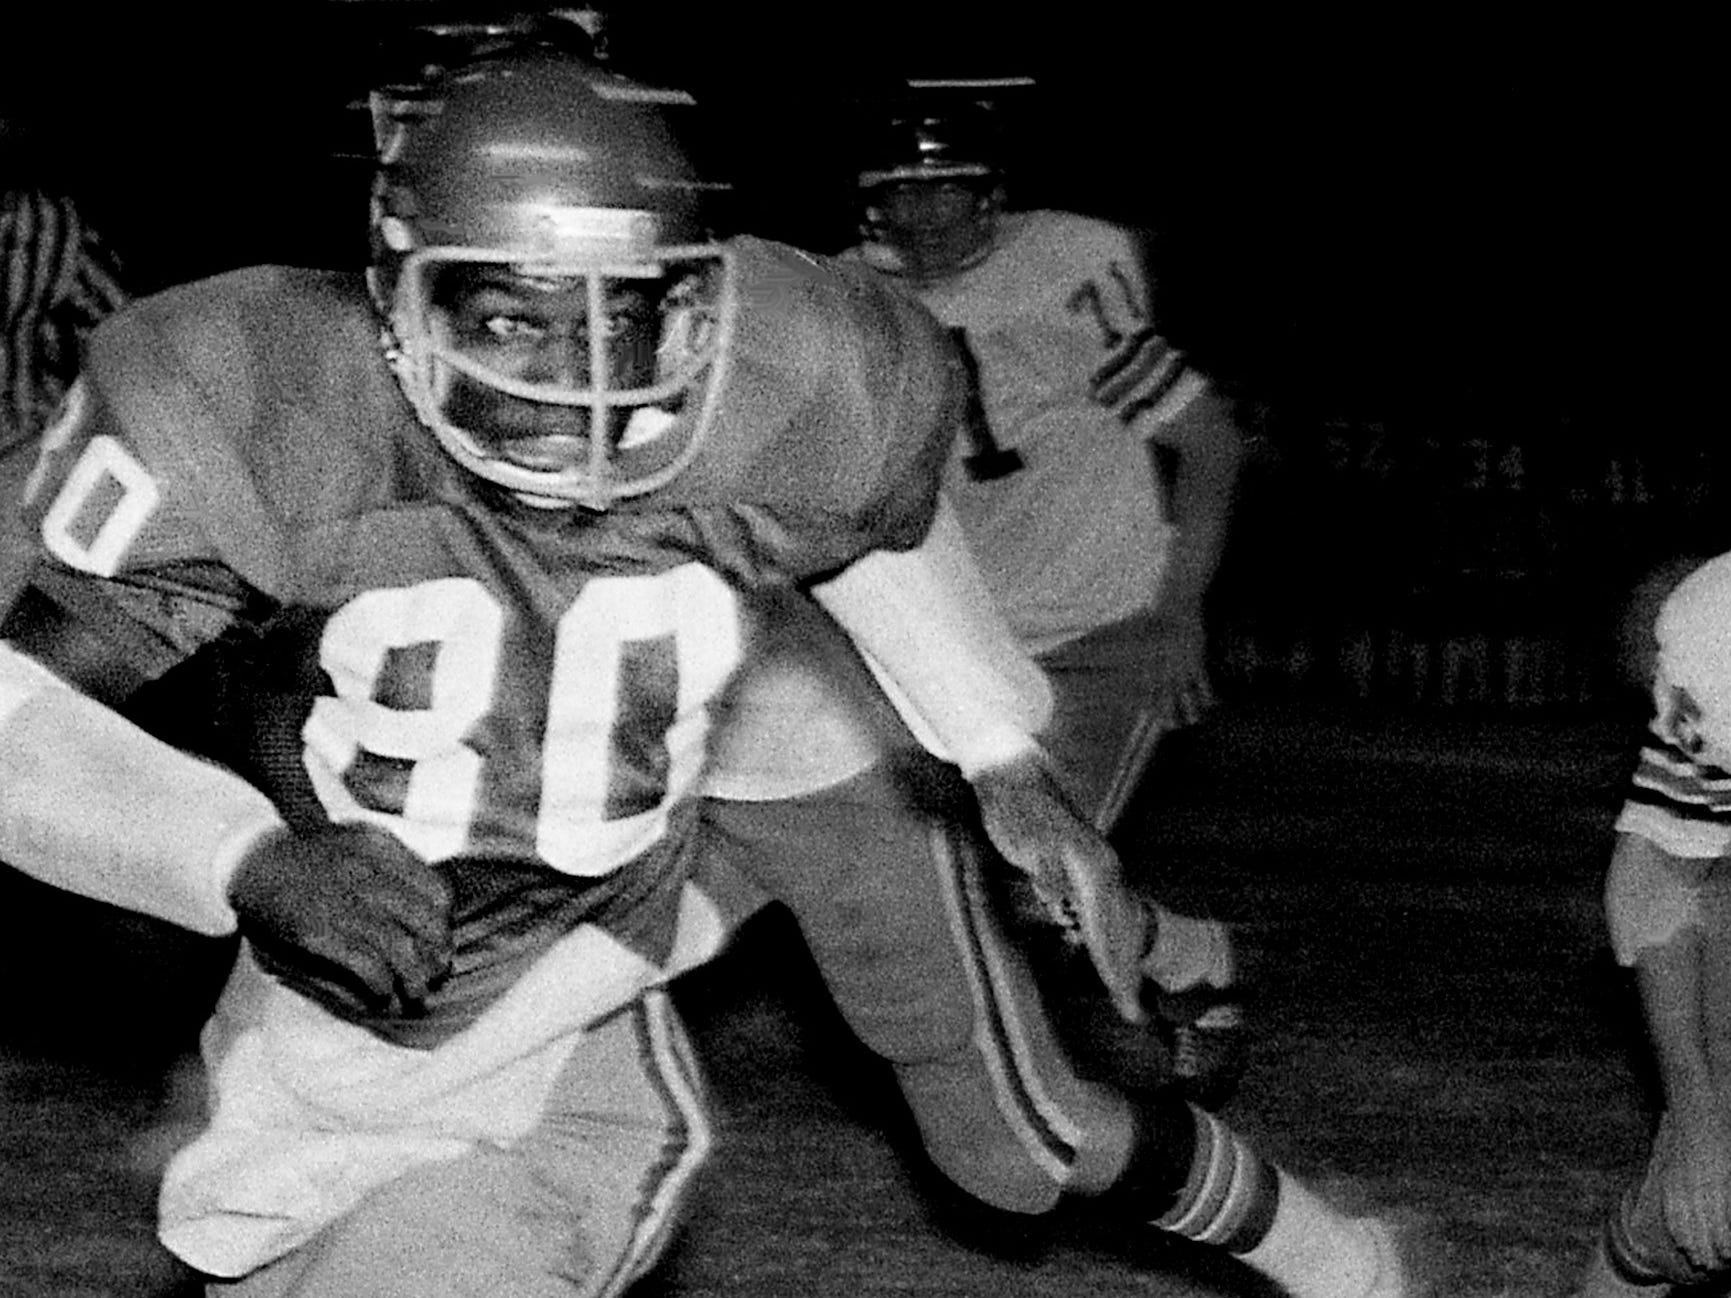 E.J. Junior, Maplewood TE/LB 1974-76